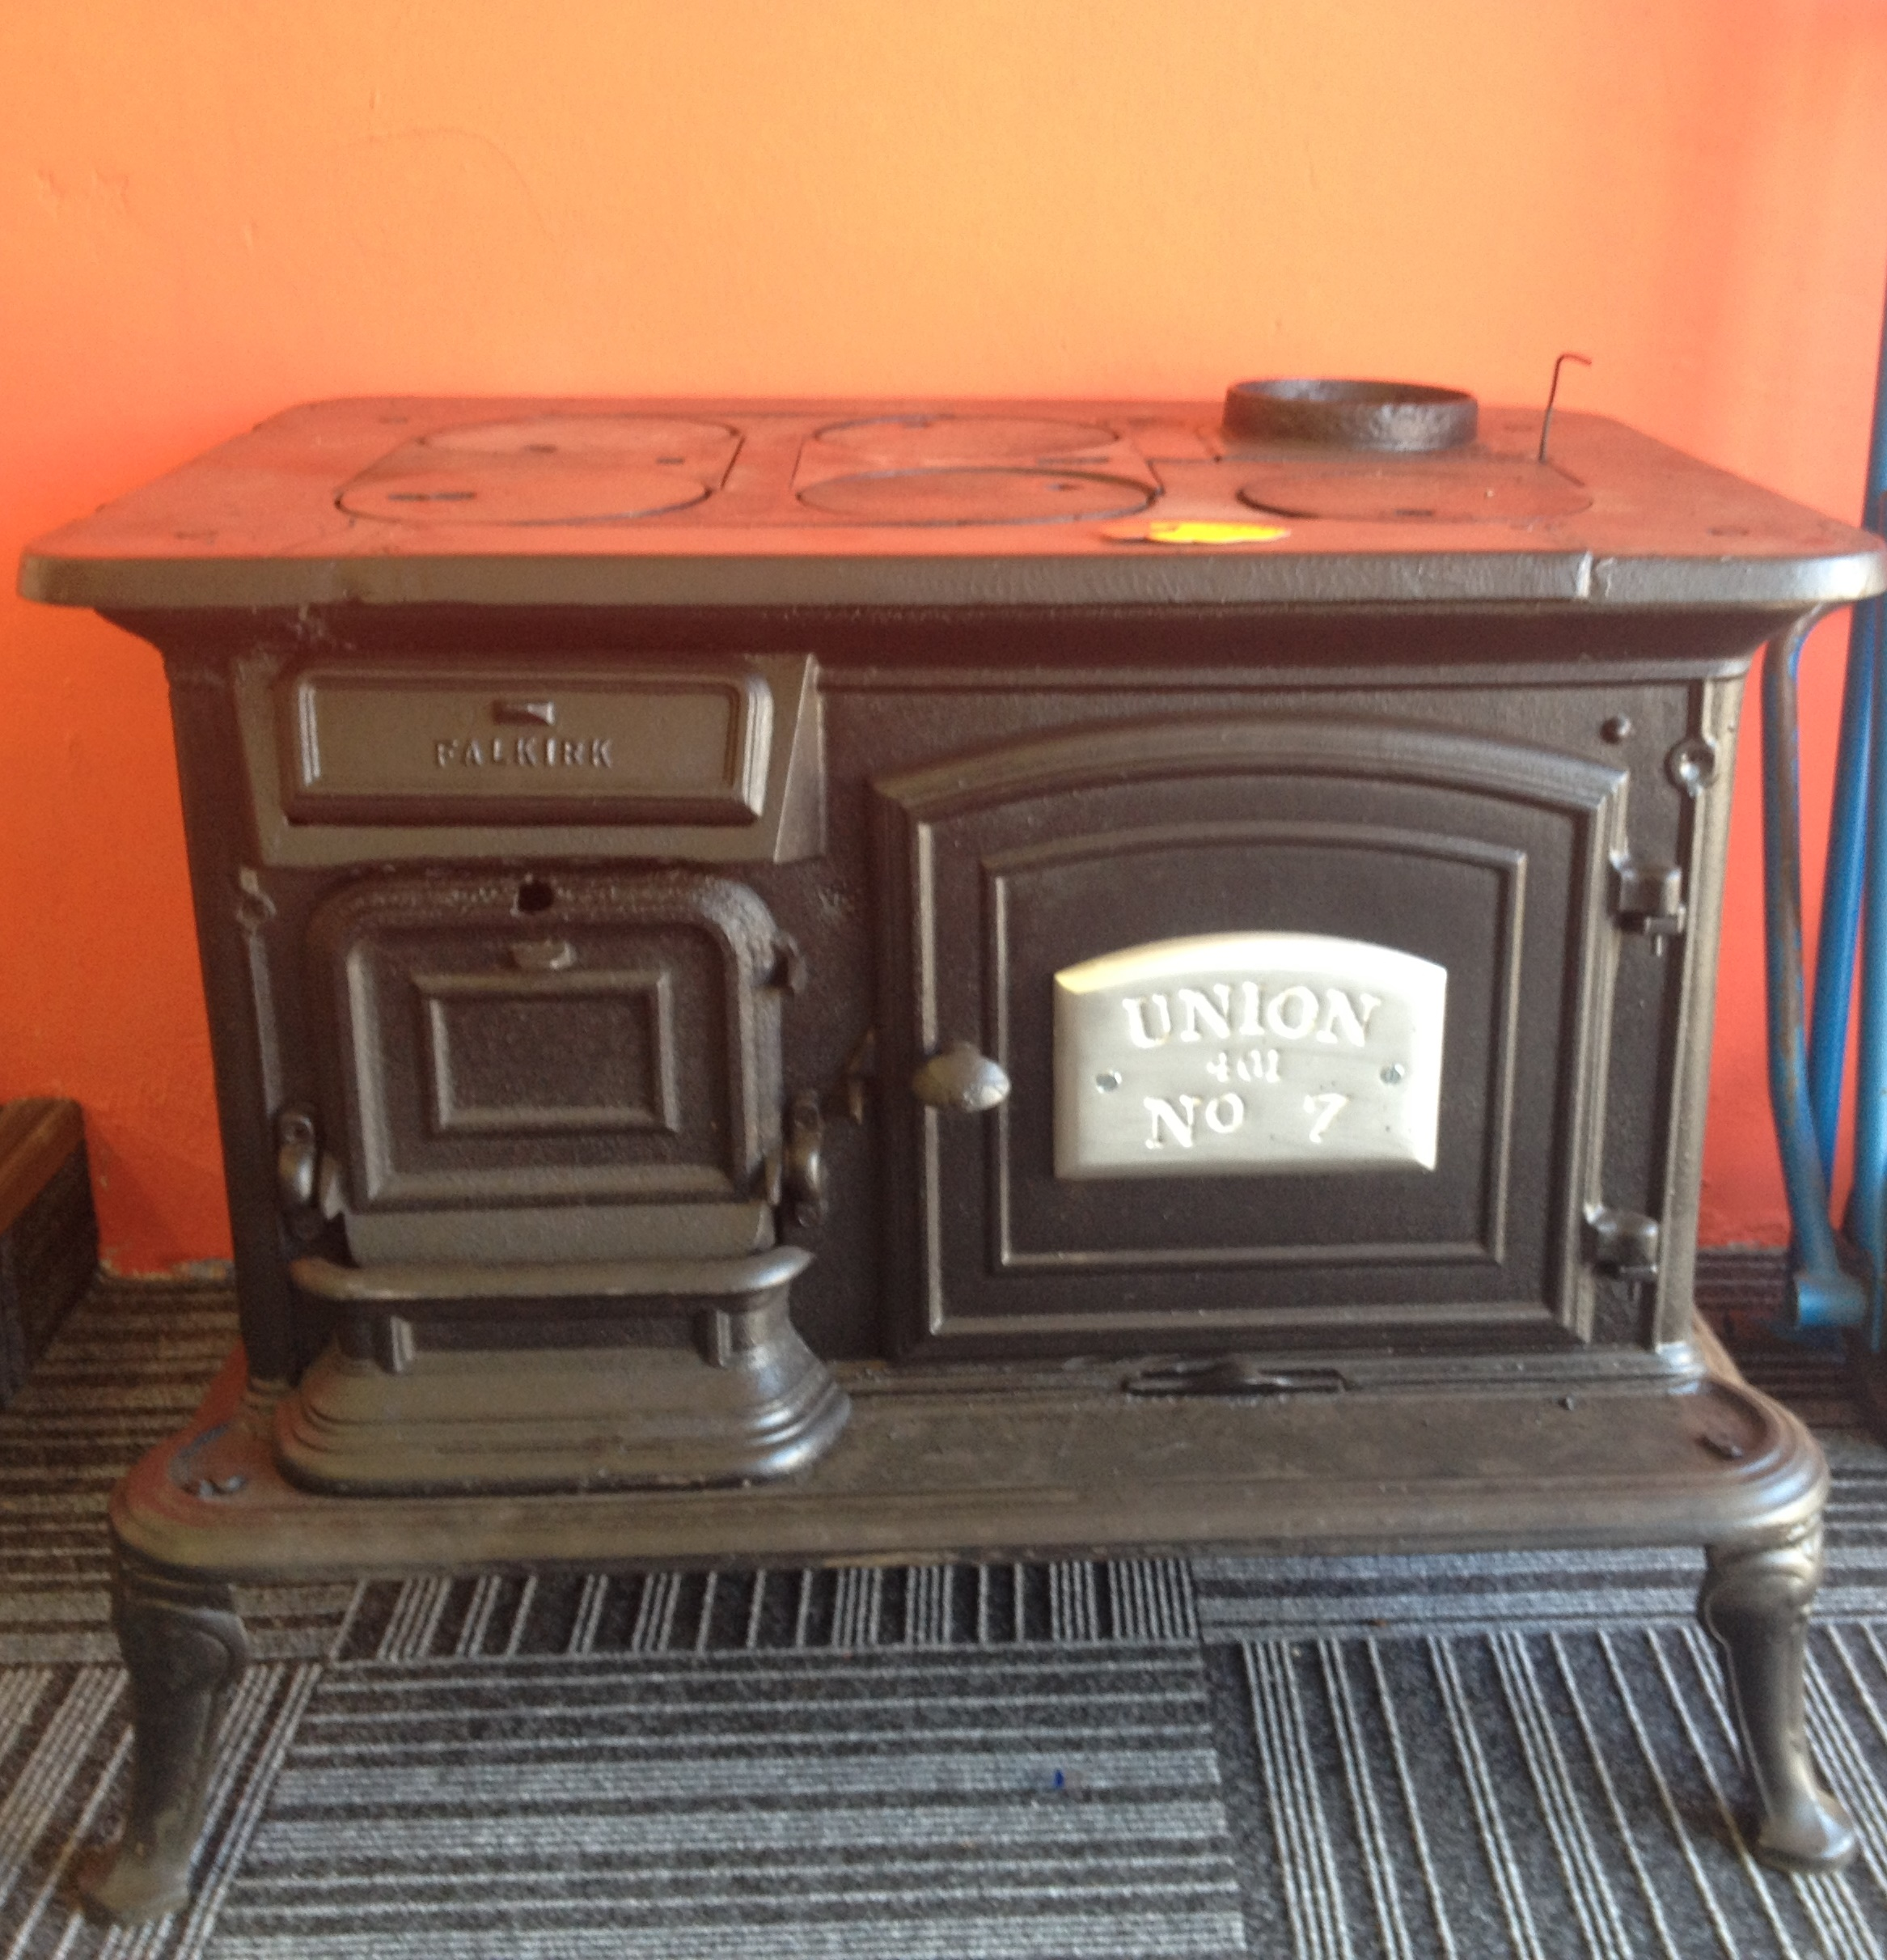 Refurbished Union 7 Coal Stove